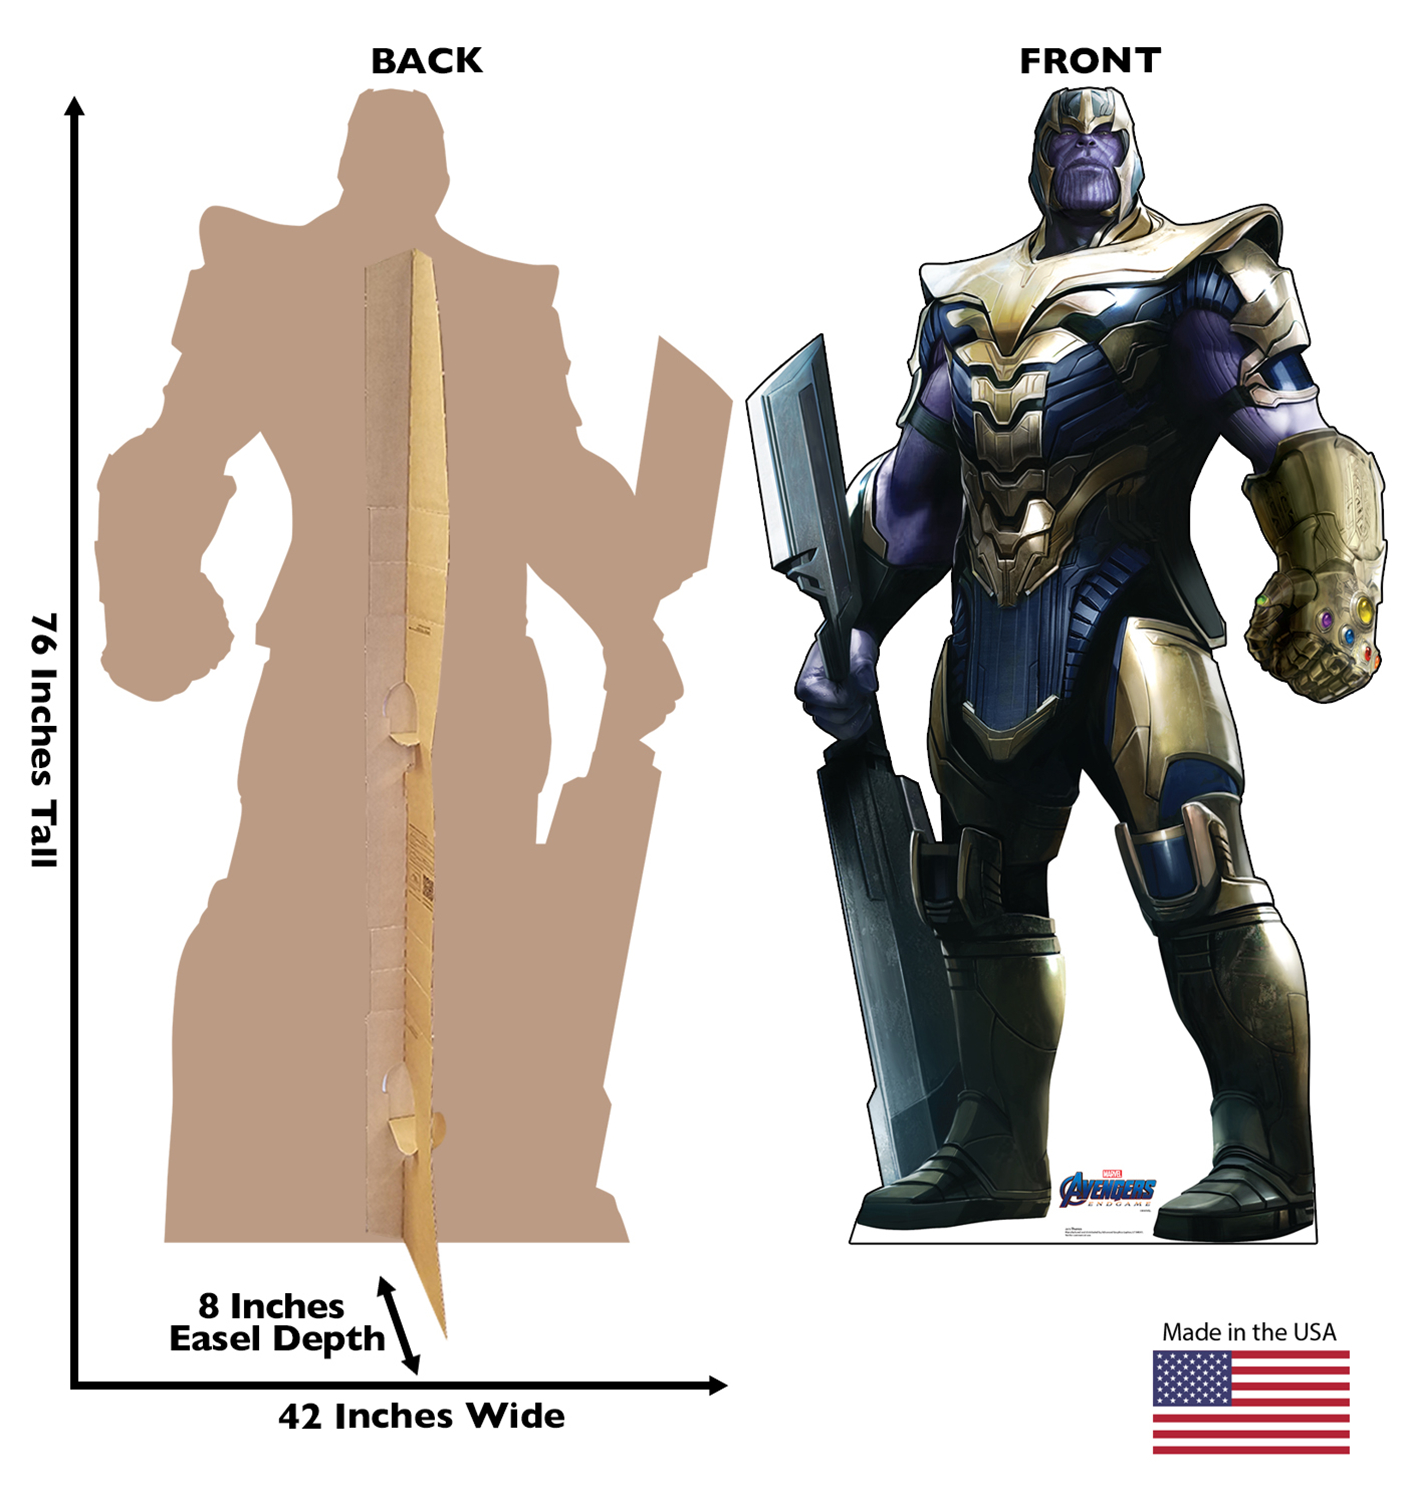 AVENGERS ENDGAME THANOS LIFE-SIZE STAND UP